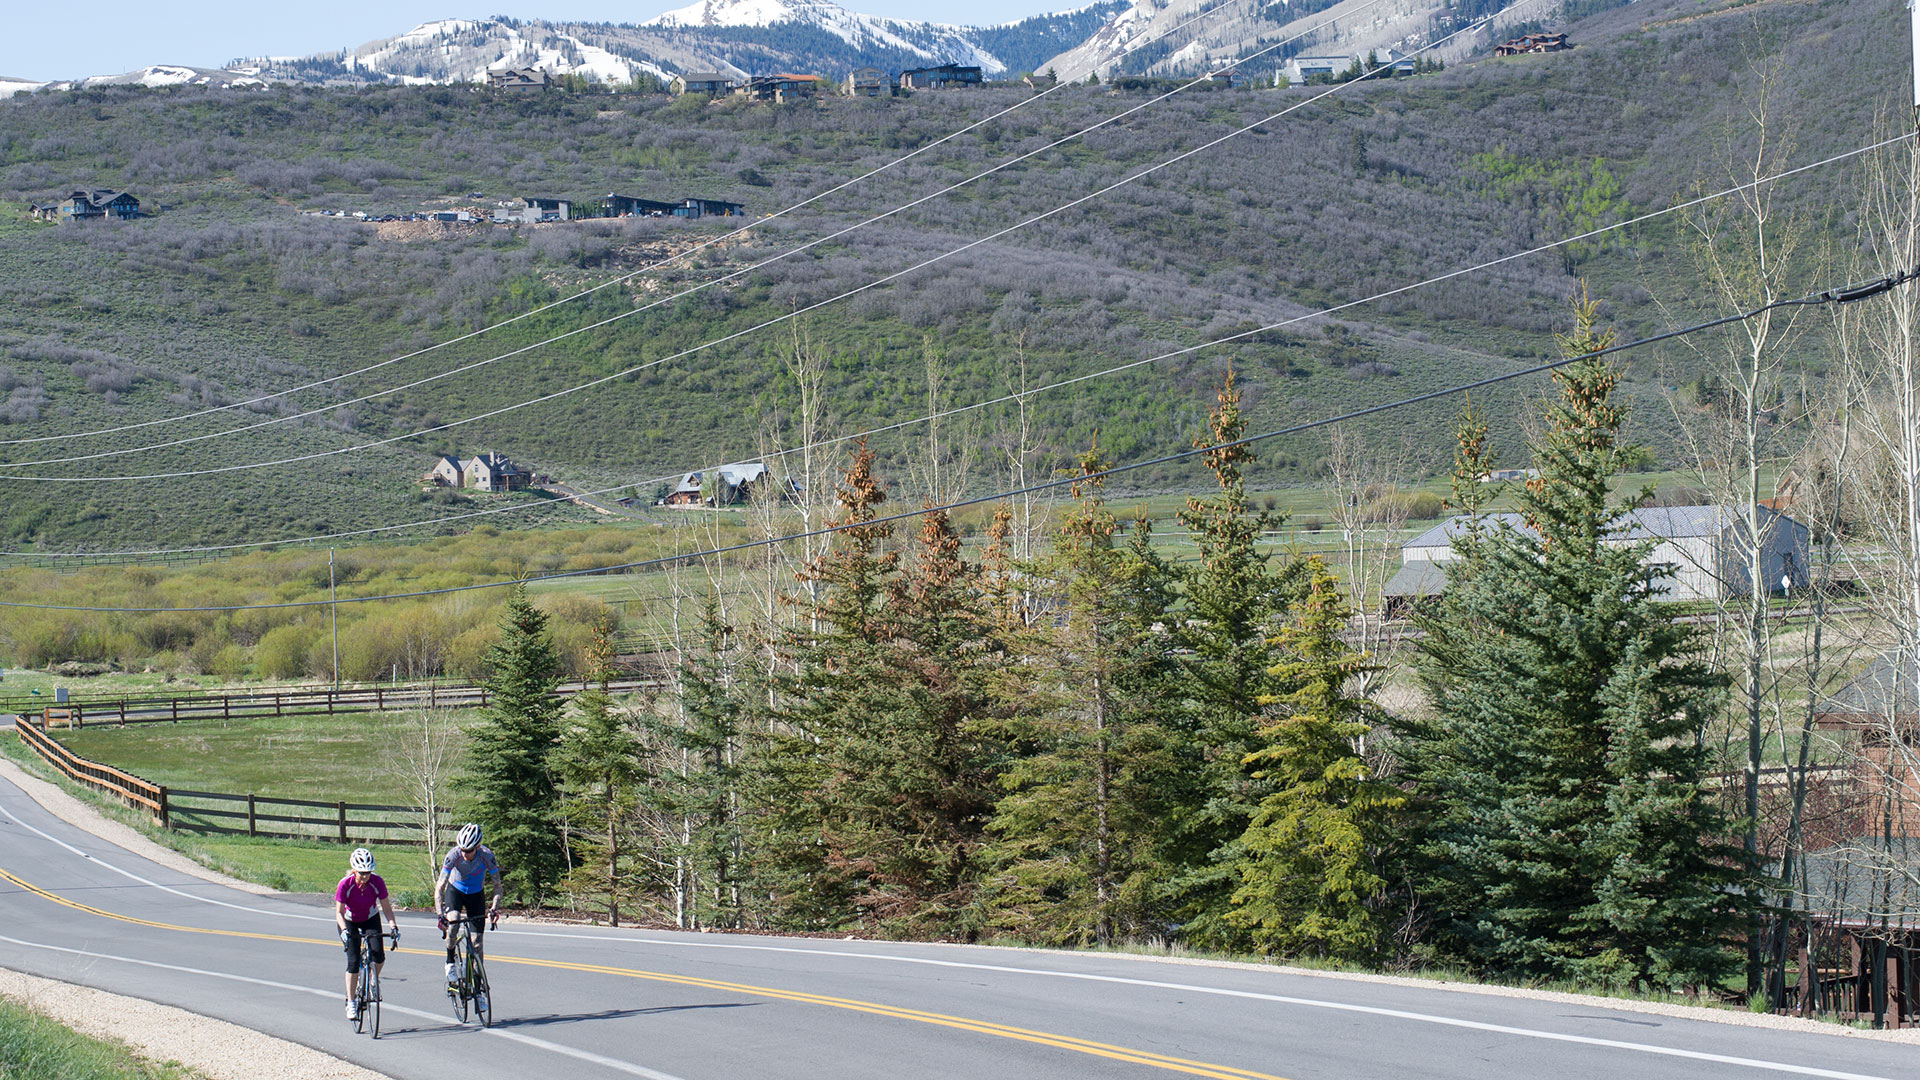 Road Biking 201 Loesson from White Pine Touring in Park City, UT.